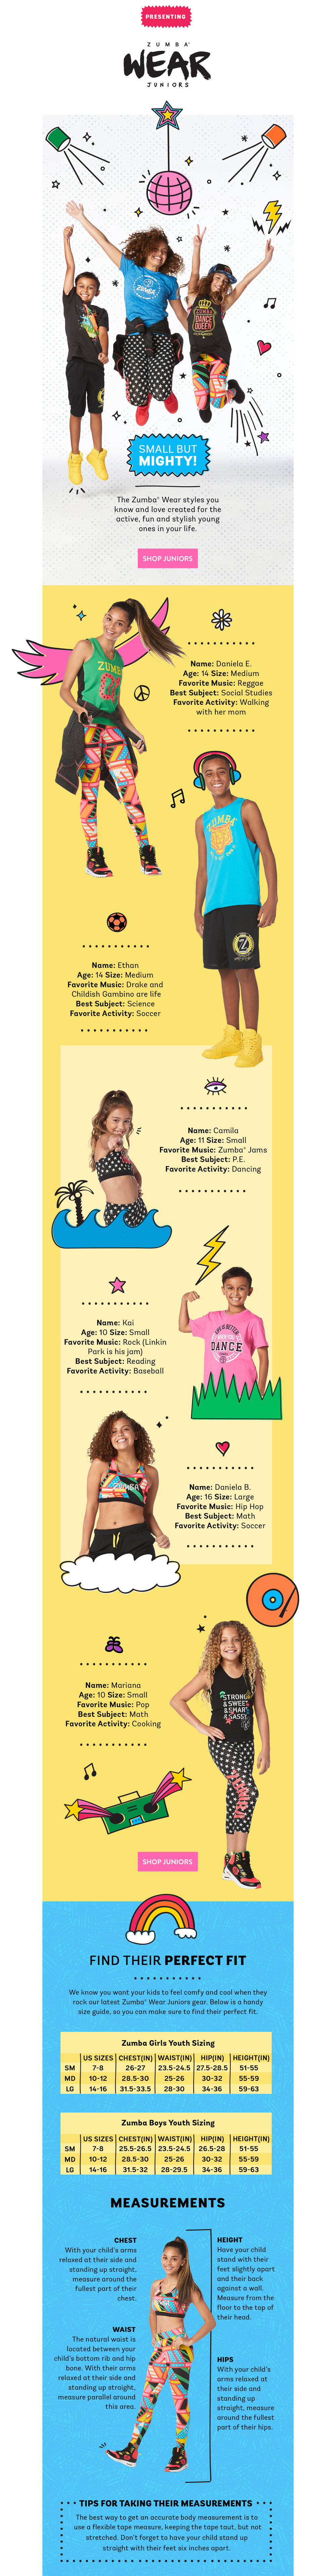 APP20182419_Zumba_Wear_Juniors_Collection_LAUNCH_EMAIL_US.jpg